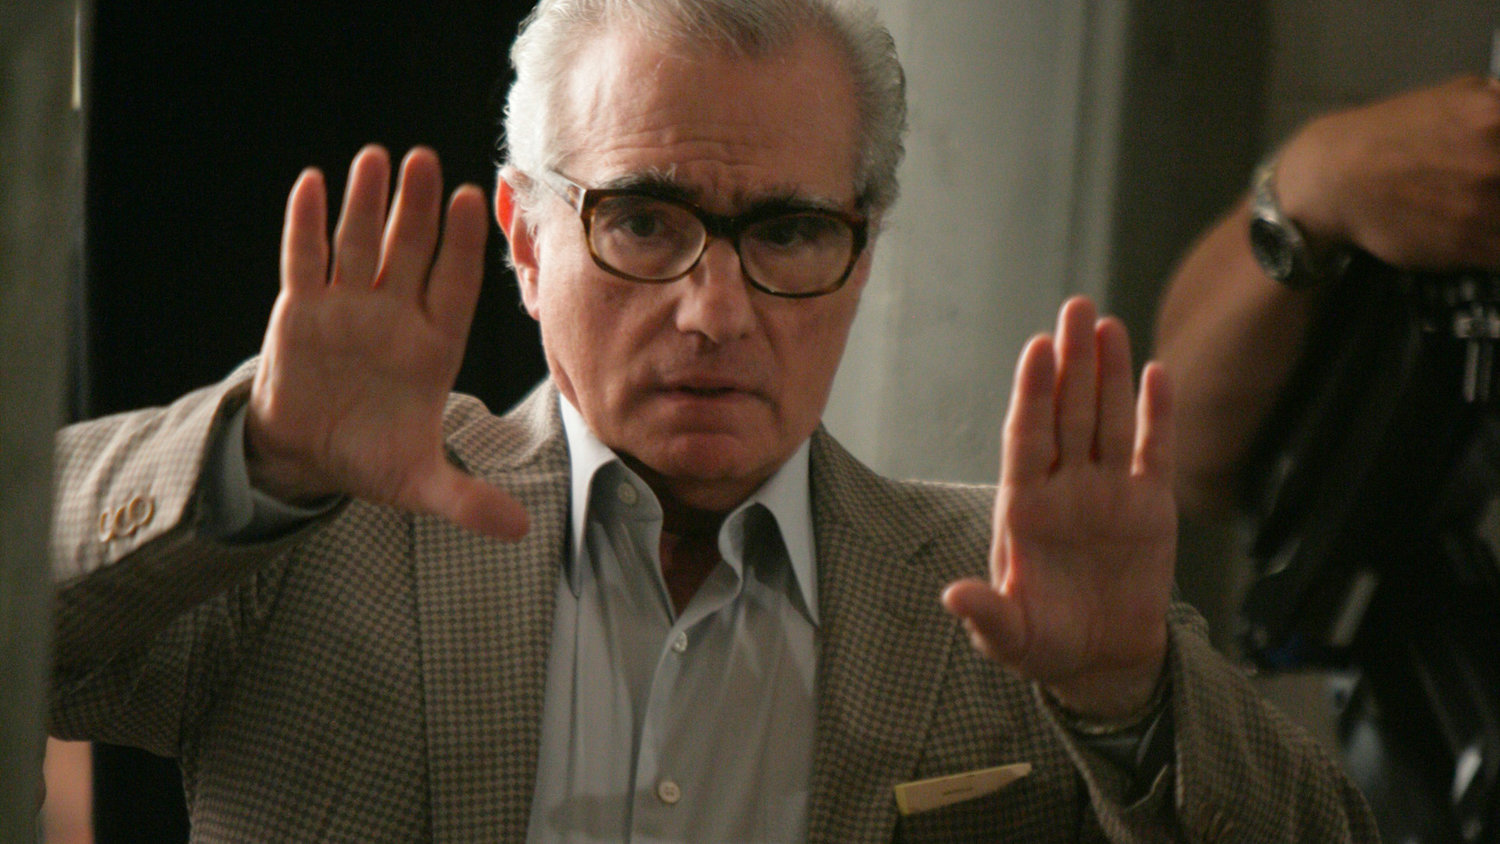 Analyzing Martin Scorsese's Cameos in His Own Movies